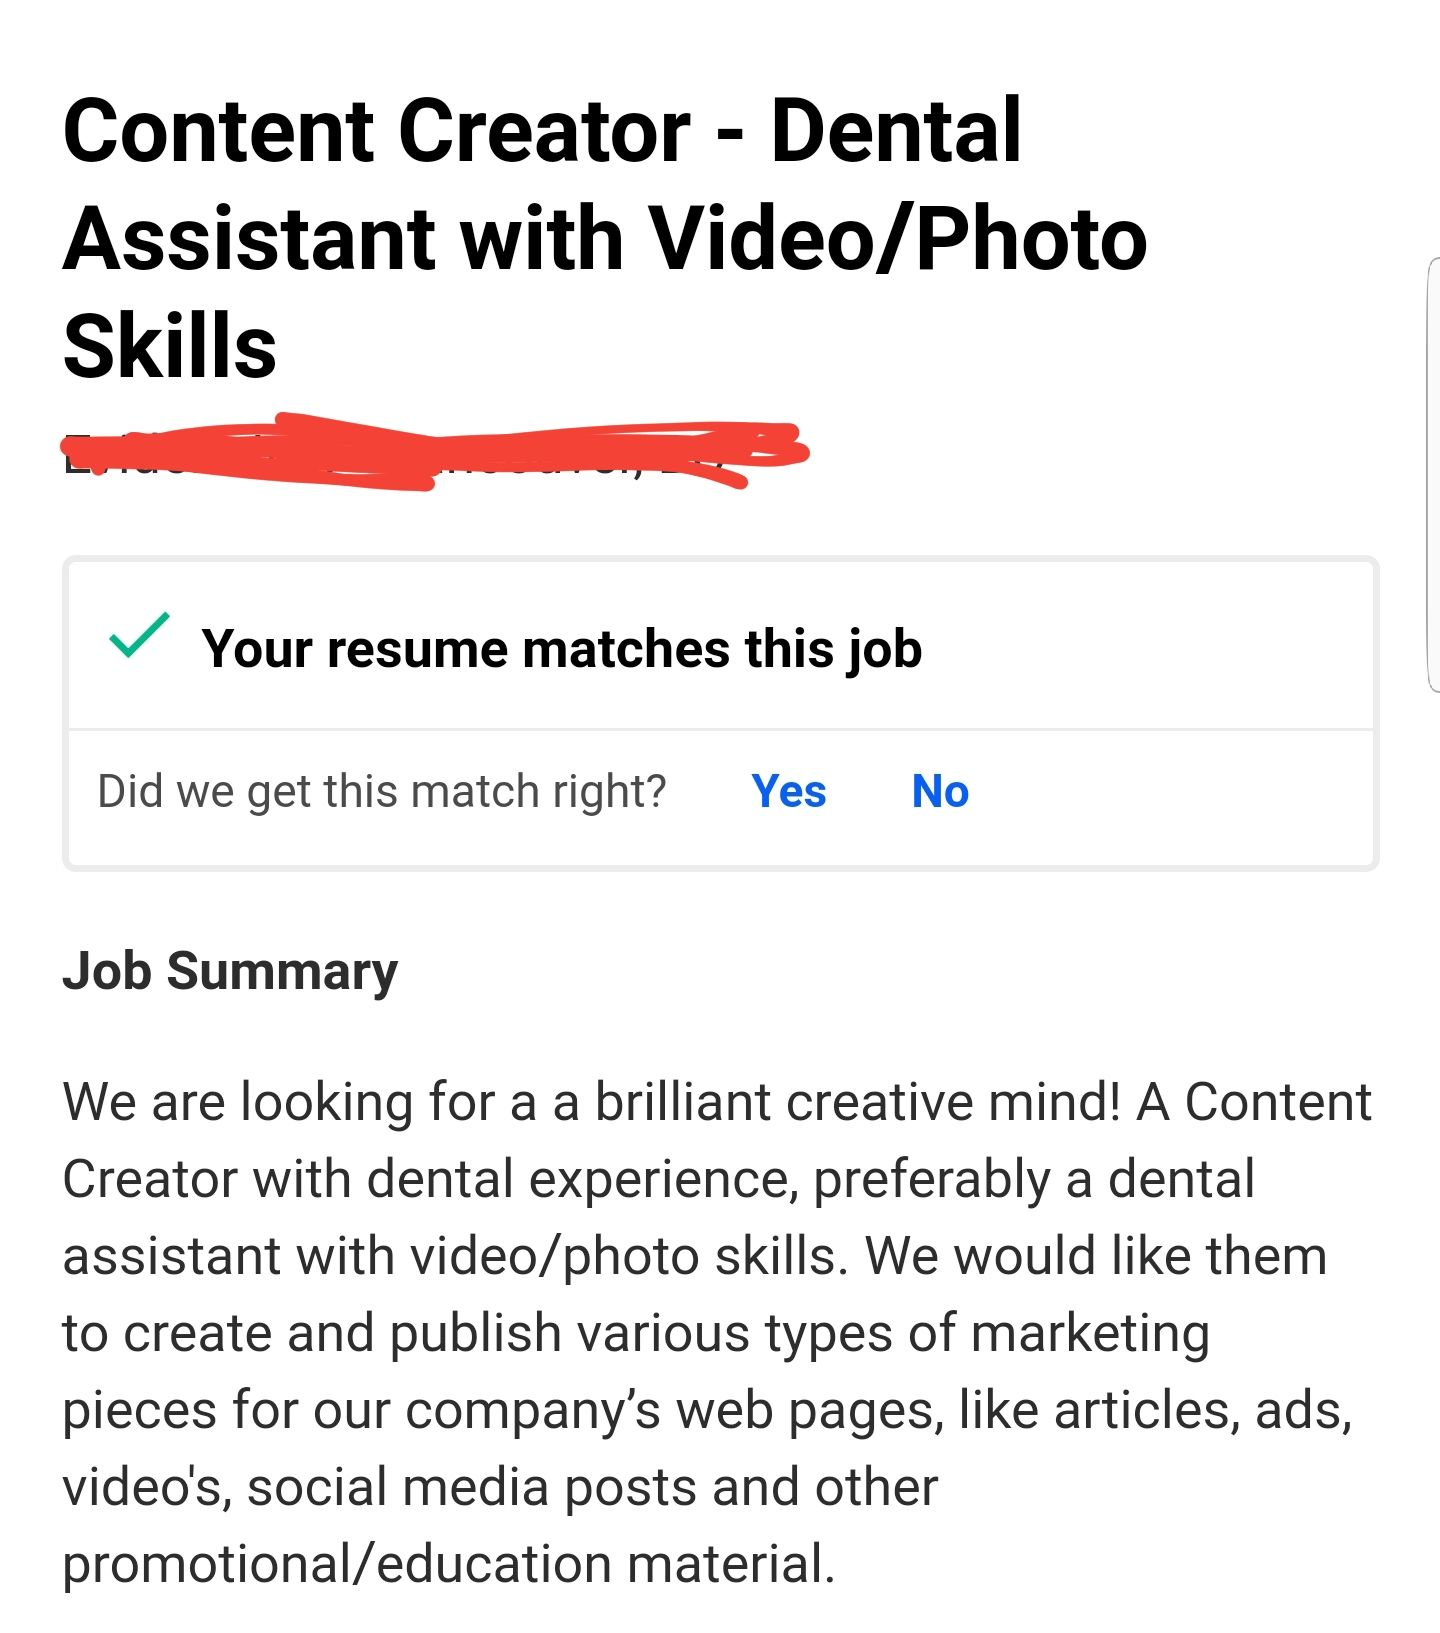 your resume matches this job dental assistant printer technician sommelier samples cover Resume Your Resume Matches This Job